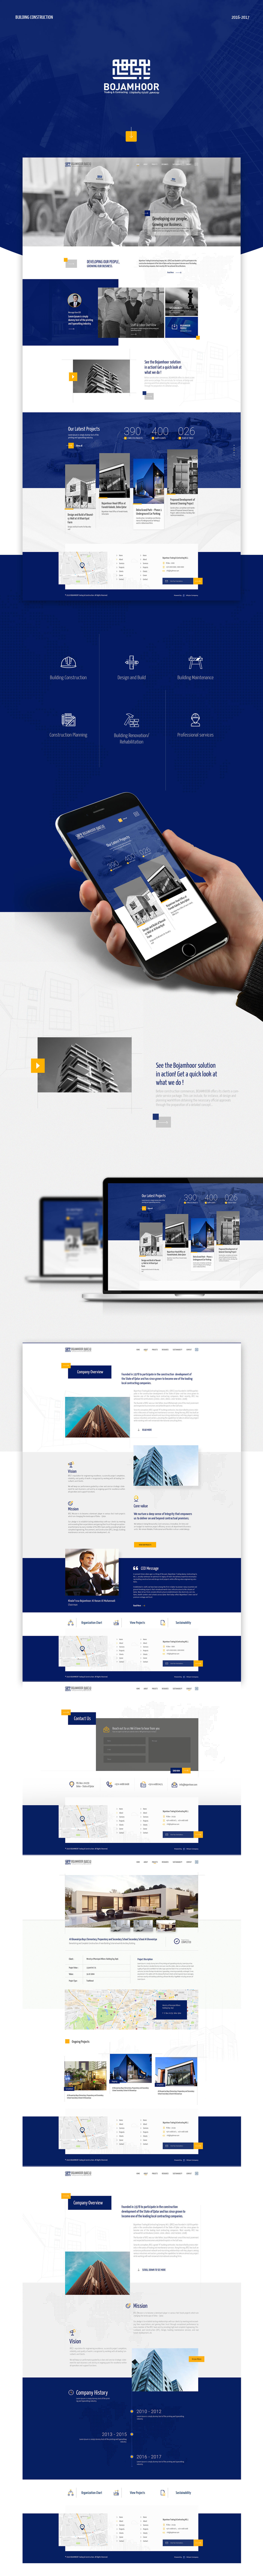 Bojamhoor website design and development by Whyte Company